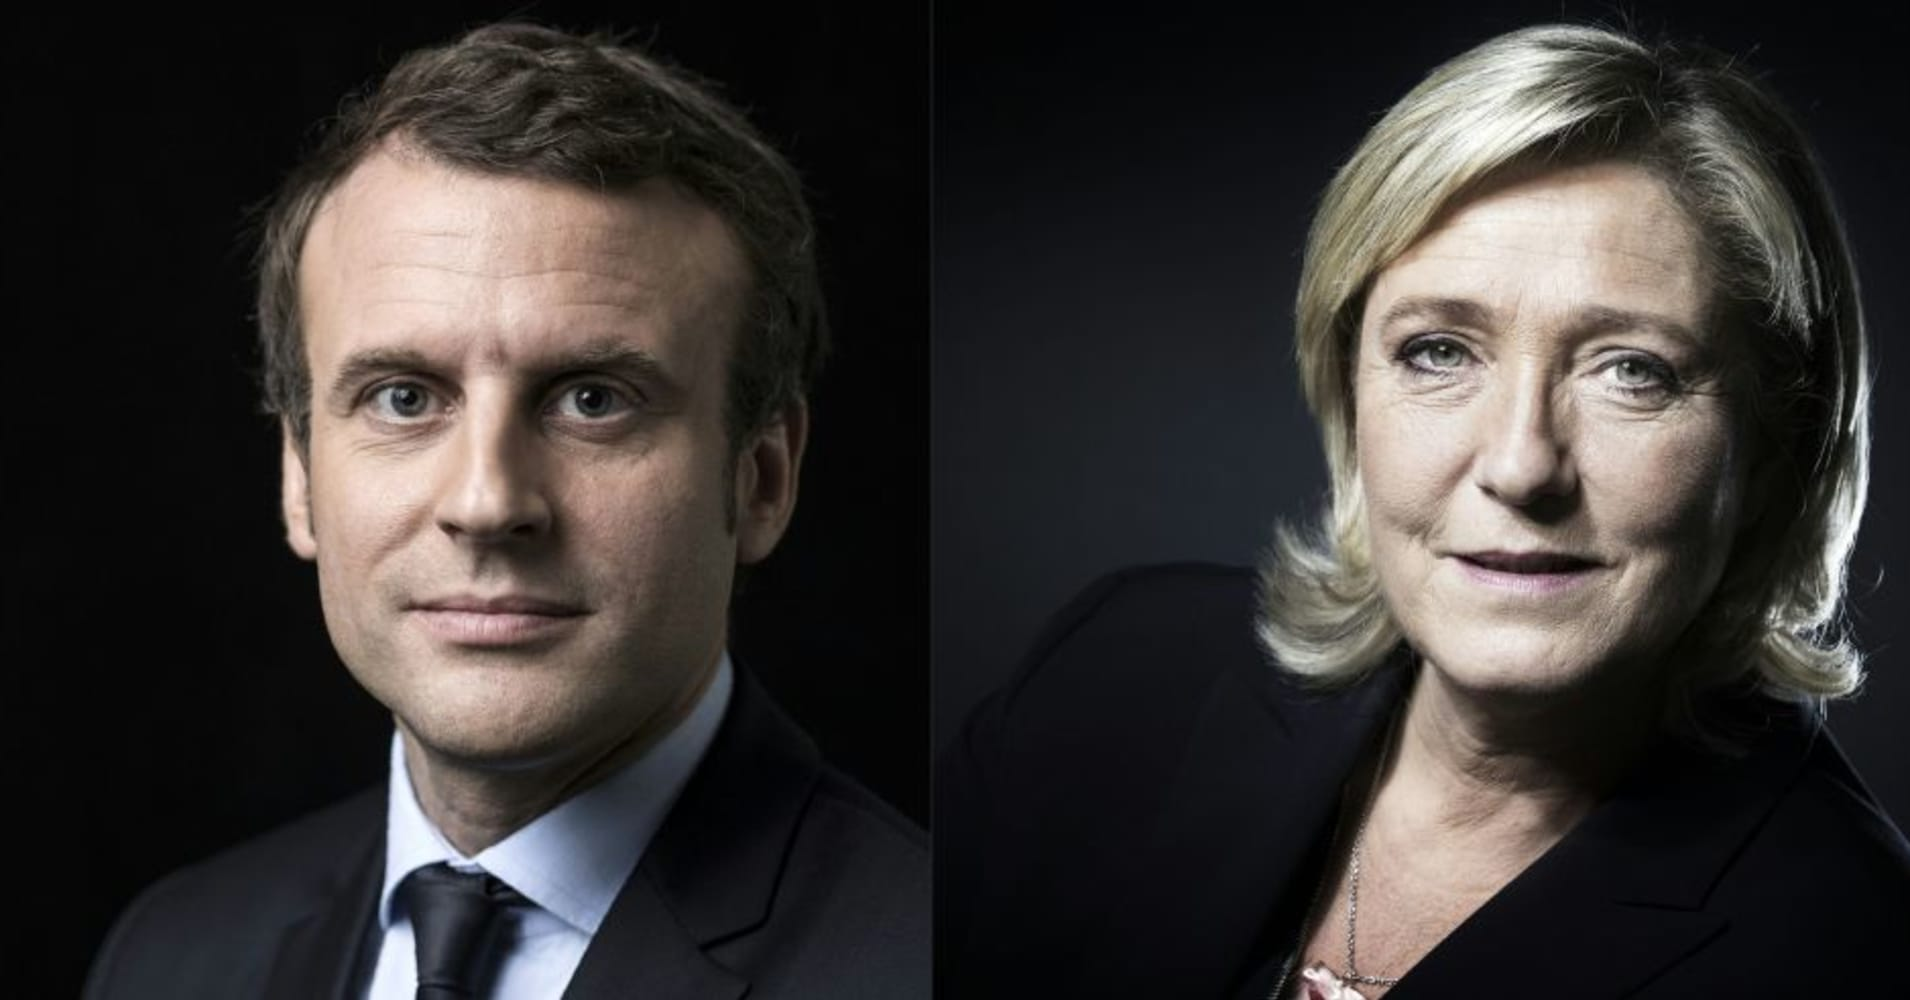 Macron vs. Le Pen – meet the next president of France